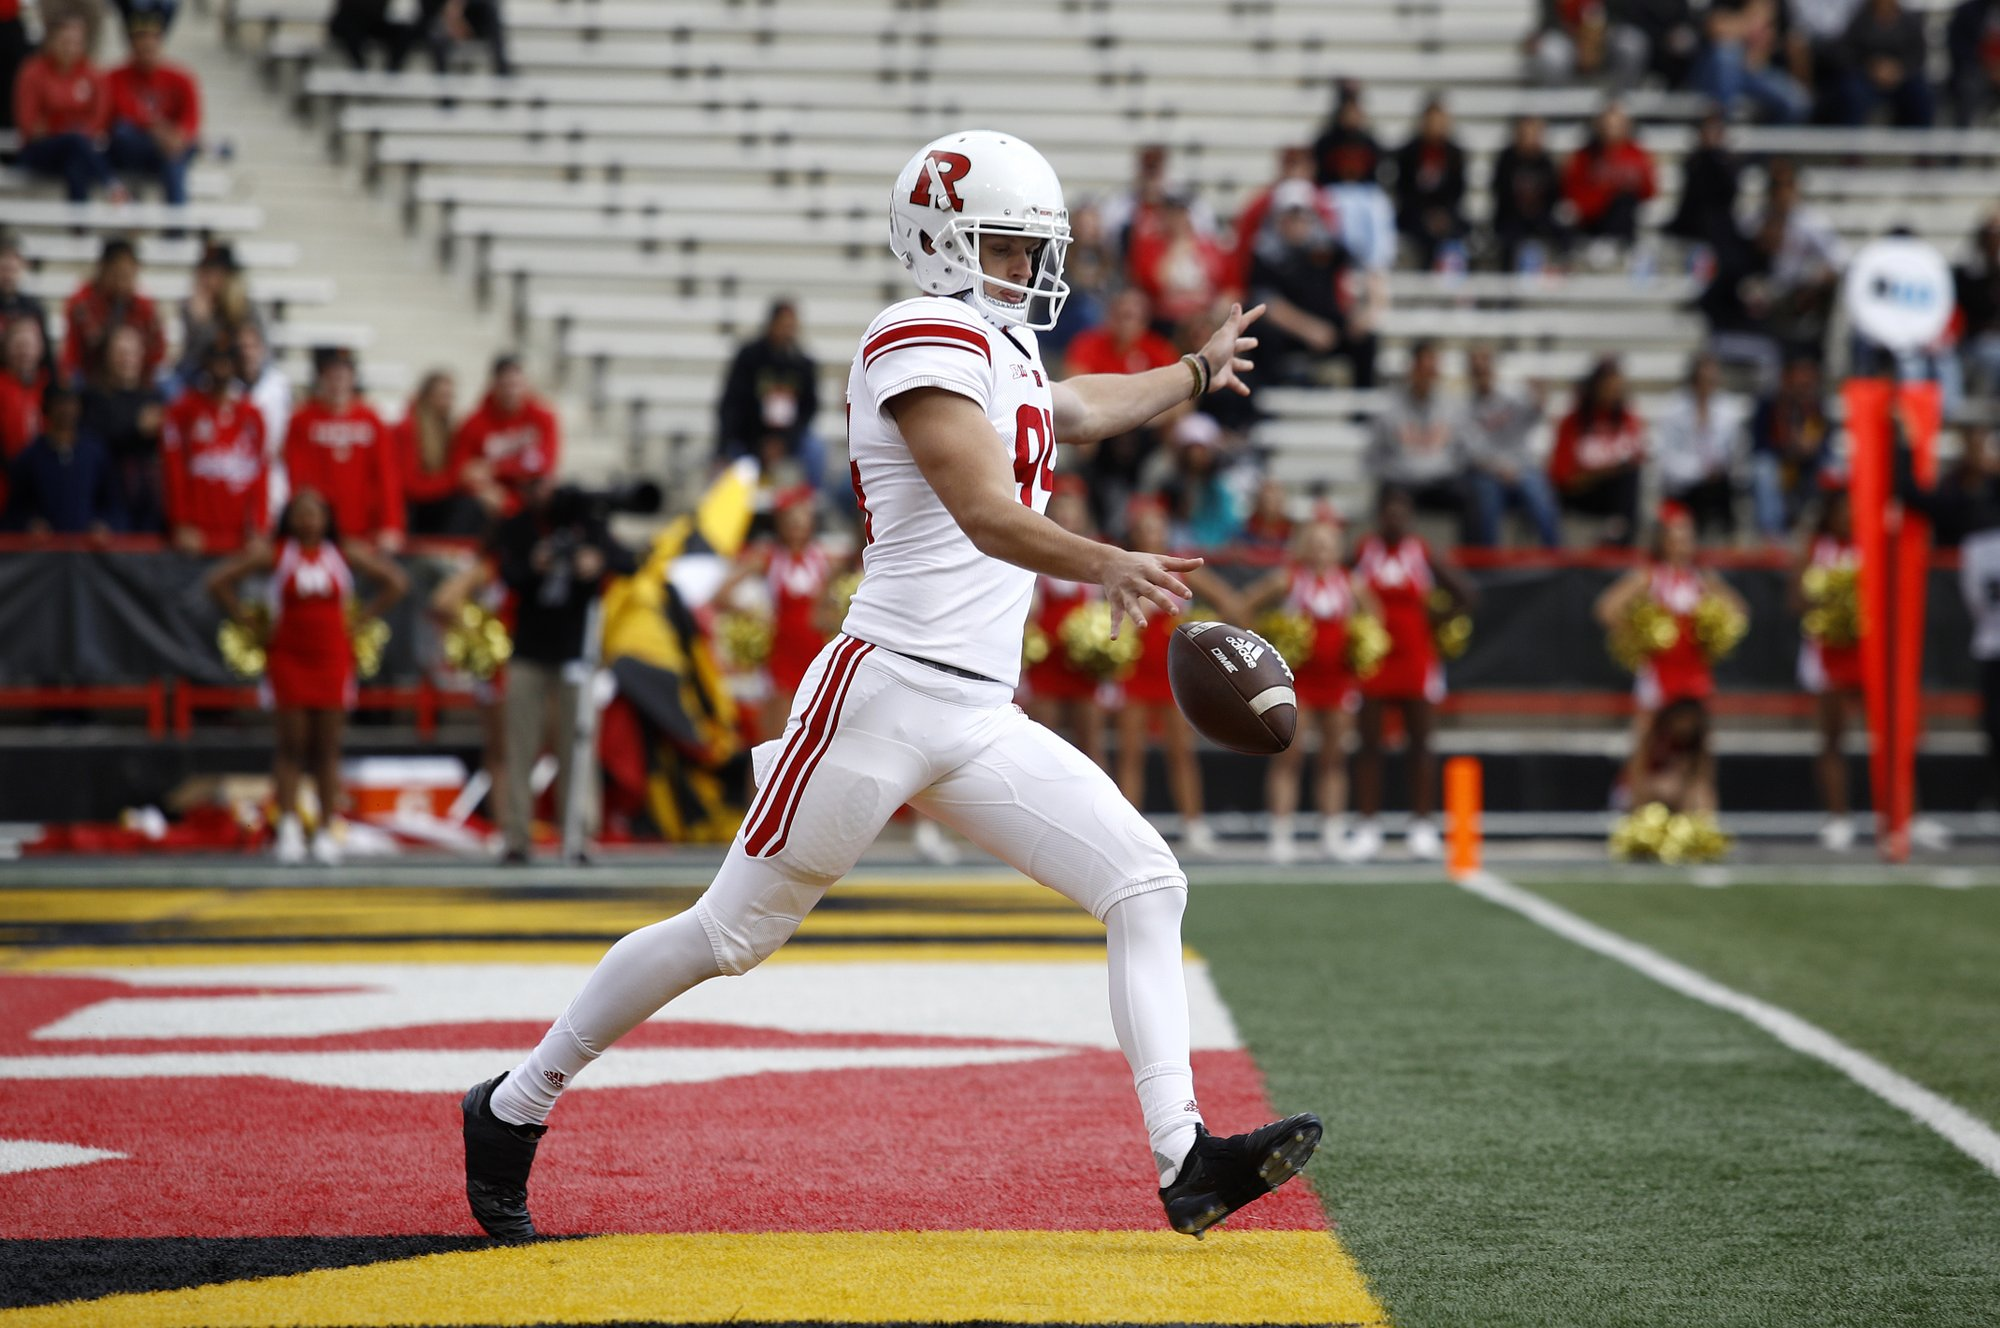 Big Ten has some of nation's top punters, and 4 Australians